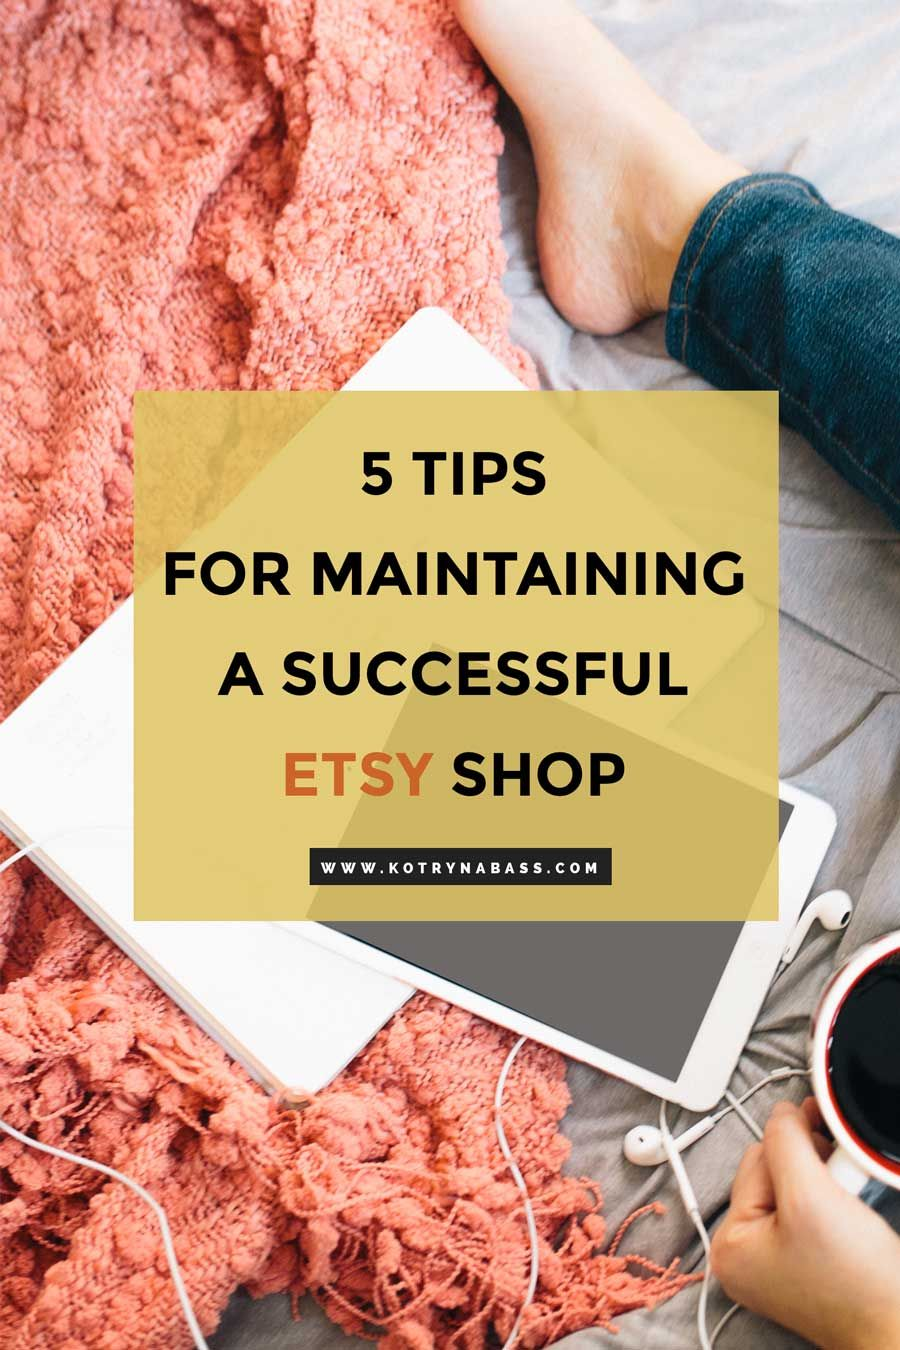 5 tips for maintaining a successful ETSY shop - Successful Blog Tips & Blogging Strategies | Kotryna Bass